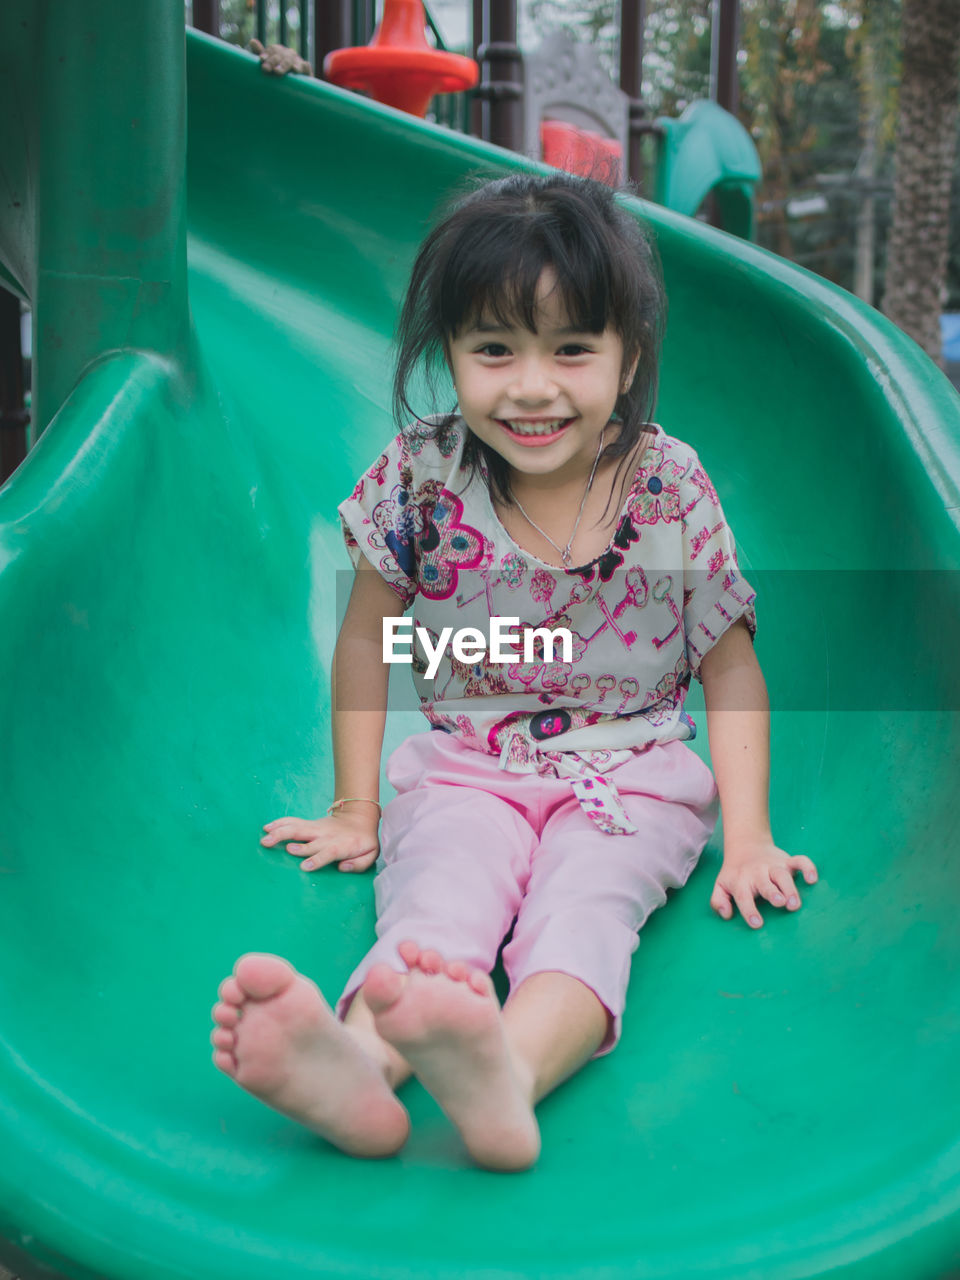 childhood, child, front view, one person, girls, smiling, innocence, happiness, real people, looking at camera, cute, females, full length, women, leisure activity, portrait, casual clothing, playground, playing, outdoor play equipment, outdoors